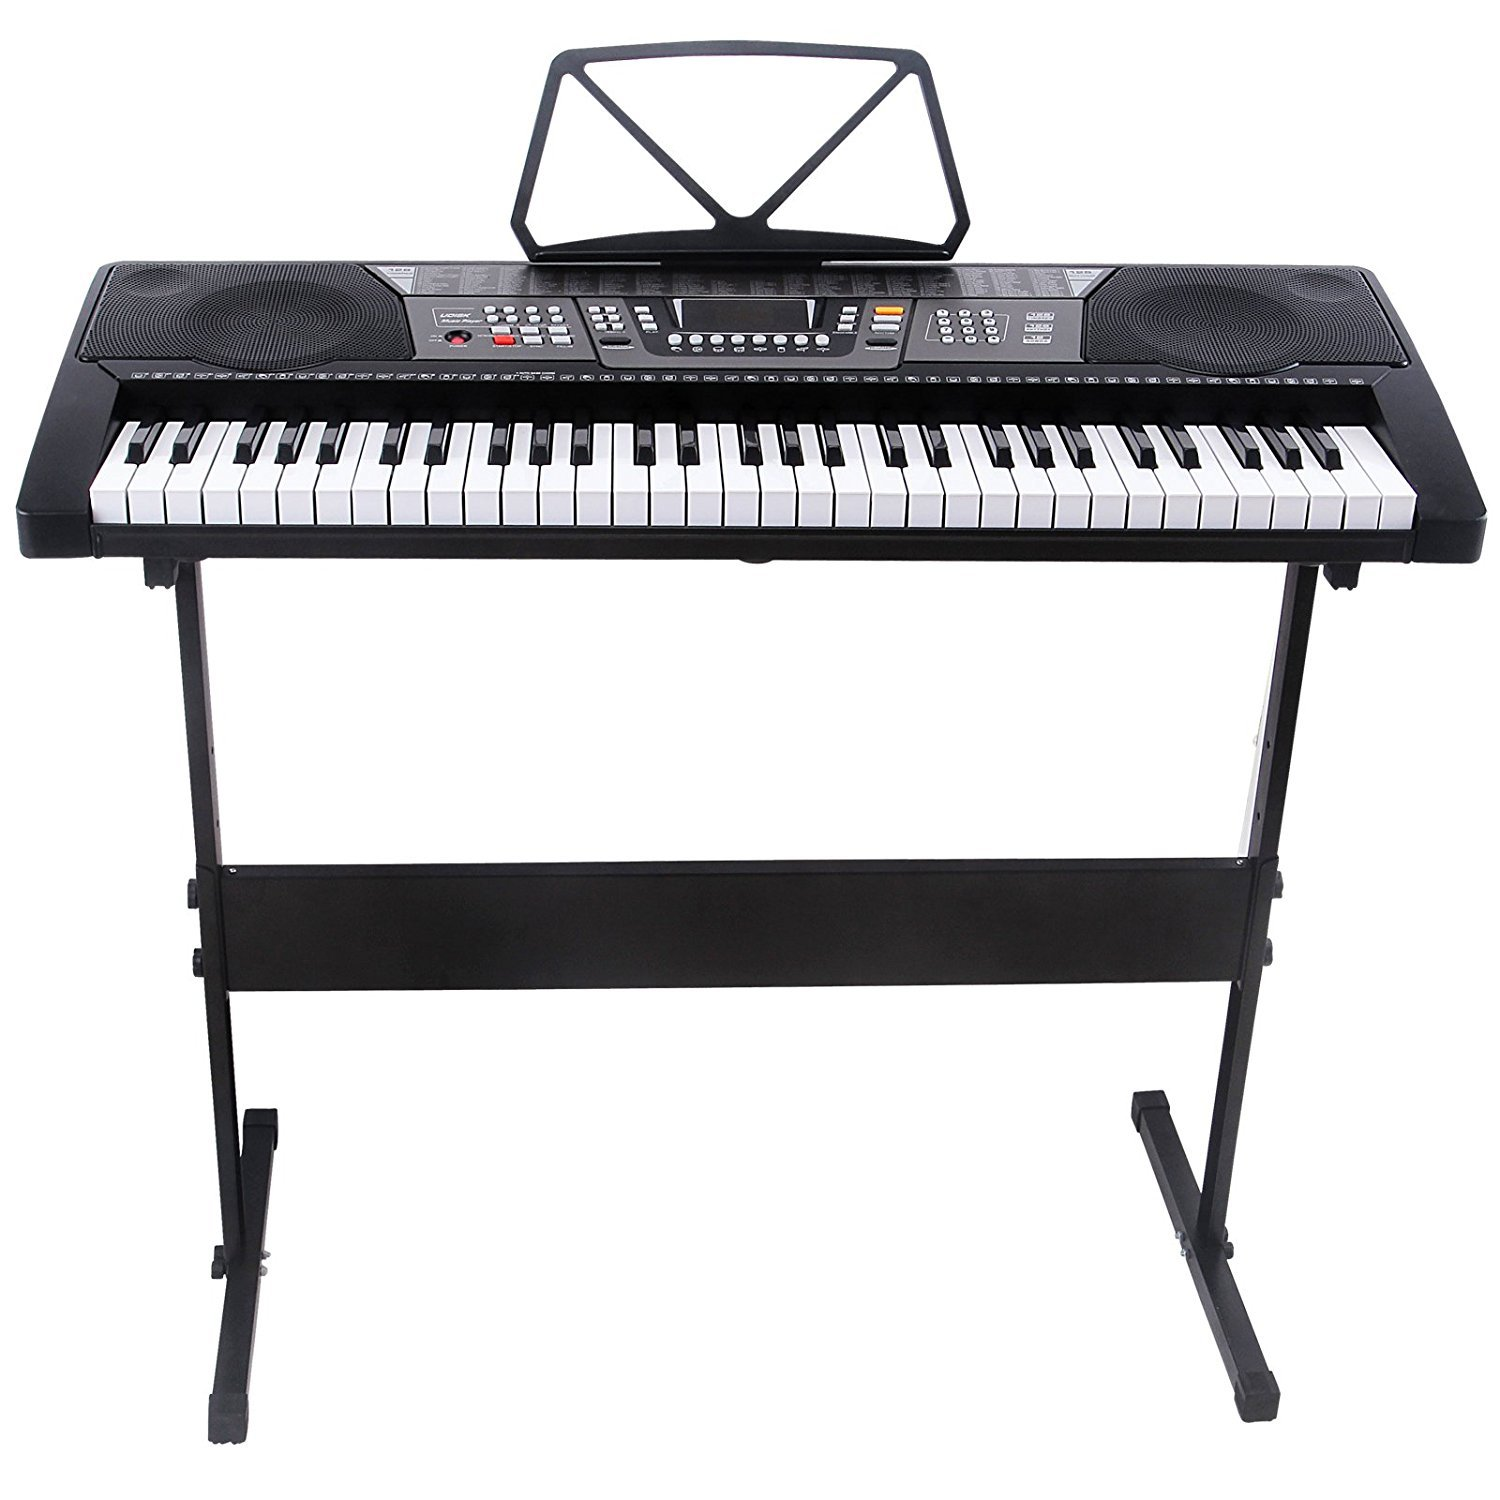 LAGRIMA 61 Key Digital Music Piano Keyboard Portable with with LED Display, USB MP3 Input and H Stand for Beginners